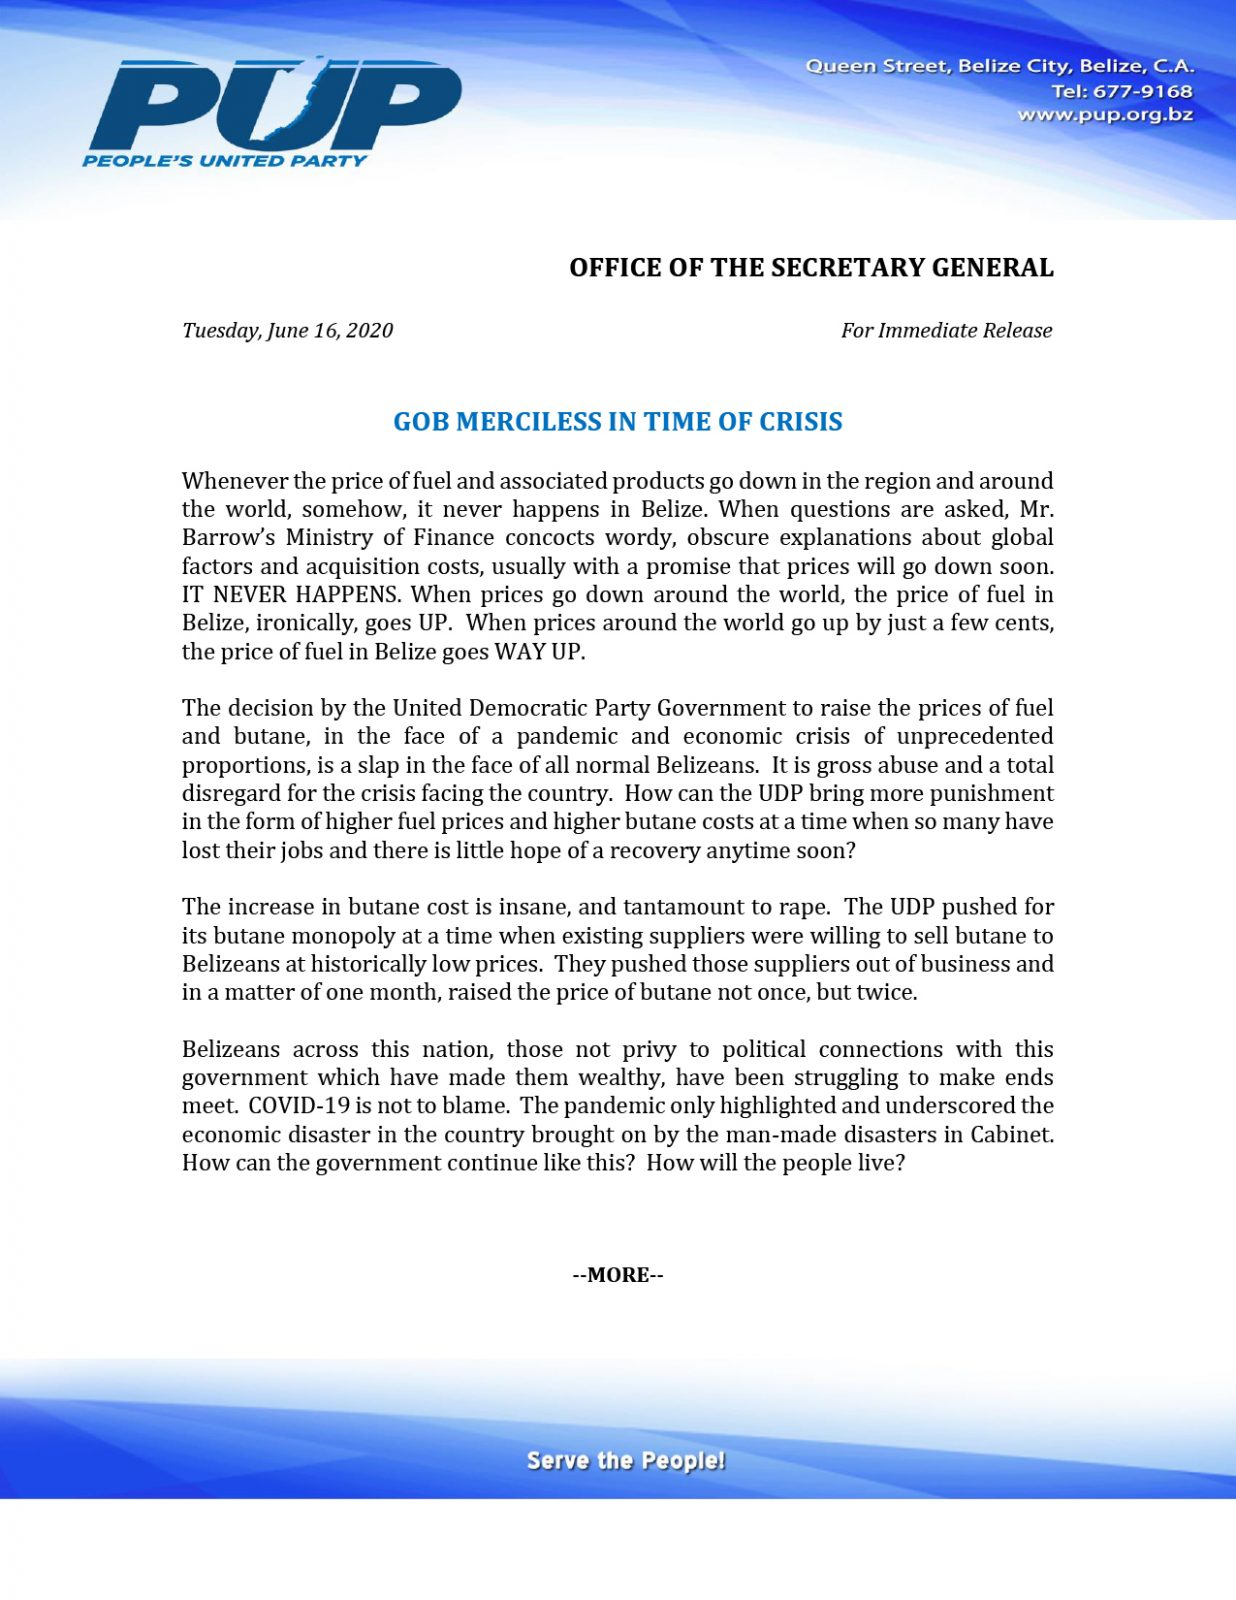 PRESS RELEASE - GOB MERCILESS IN TIME OF CRISIS-1